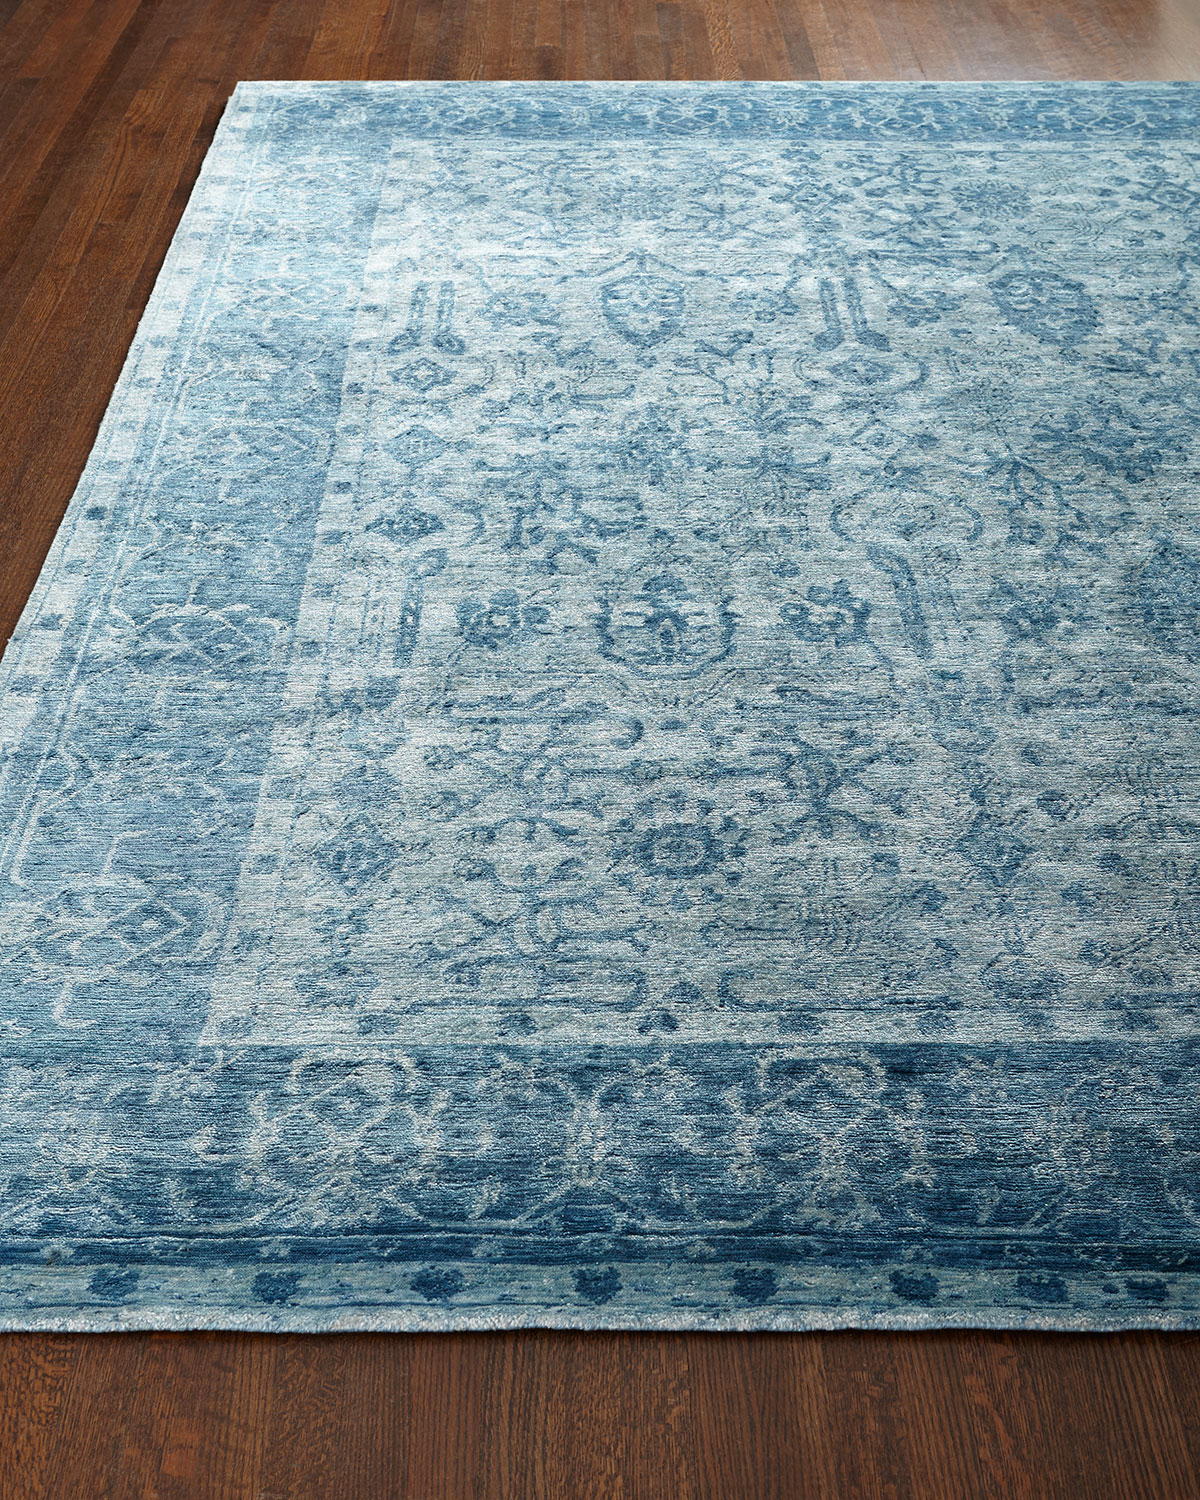 Exquisite Rugs Sweet Blues Hand-Knotted Rug, 6' x 9'